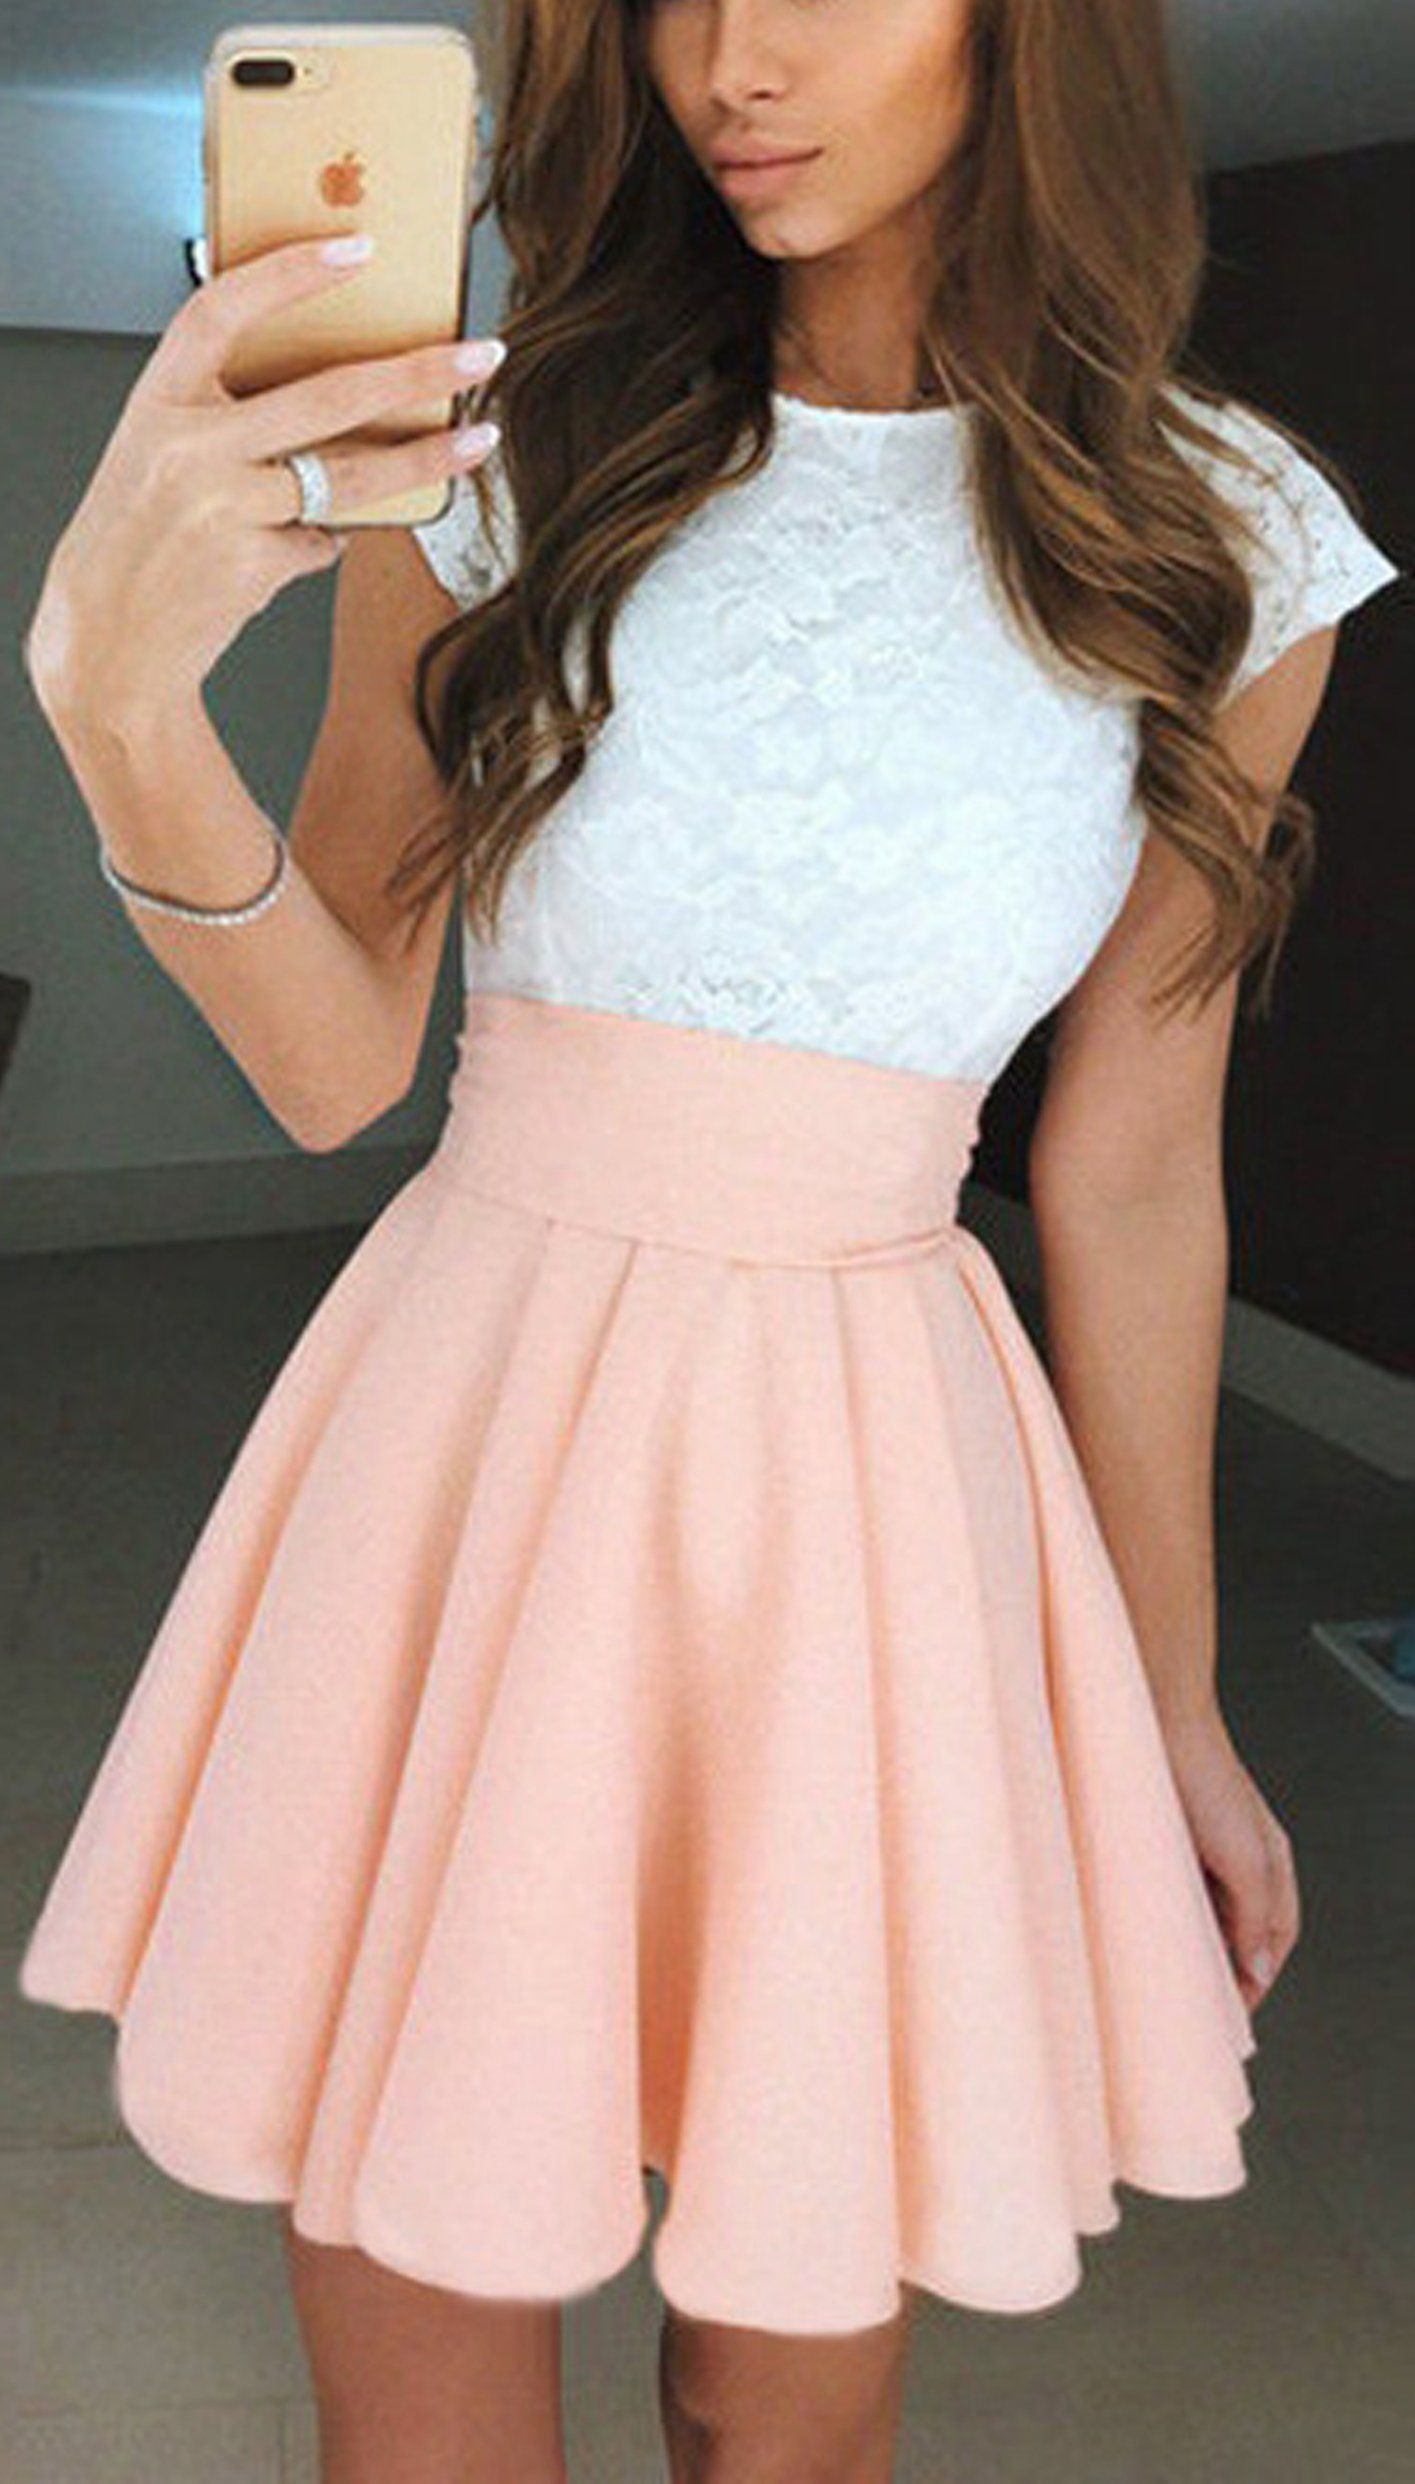 Cute Casual Summer Outfit Ideas for Teens - Pretty Lace Skater ...